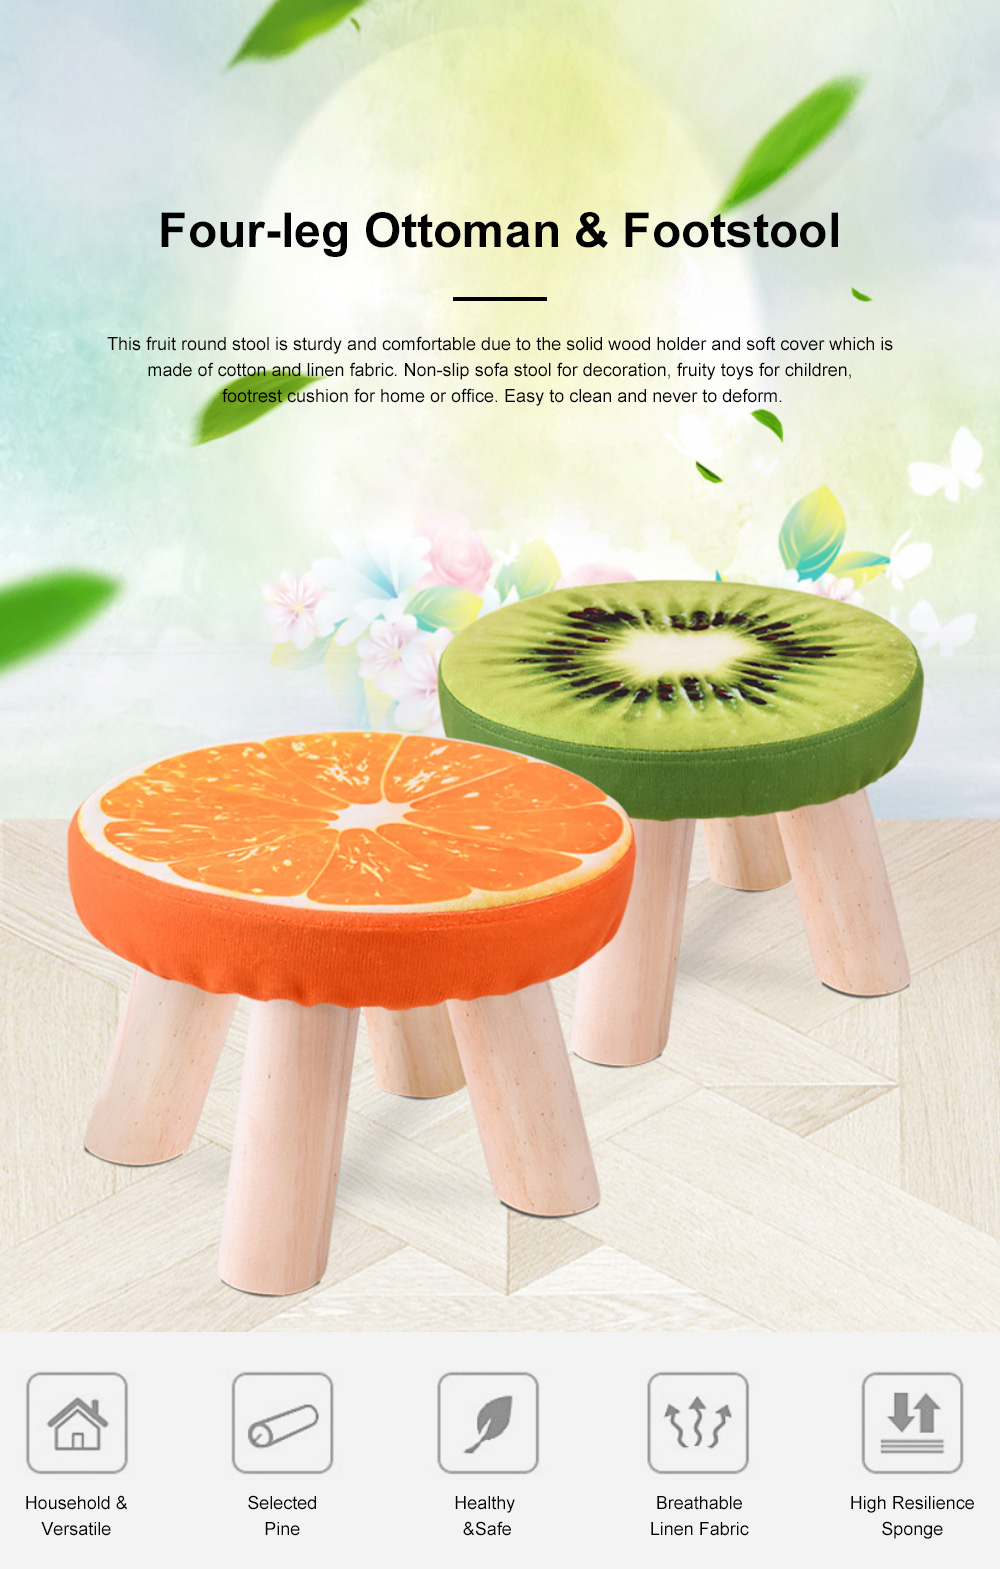 Super Simple Fruit Patterns Footstool With Solid Wooden Legs Small Round Fabric Ottoman For Home Decoration Alphanode Cool Chair Designs And Ideas Alphanodeonline